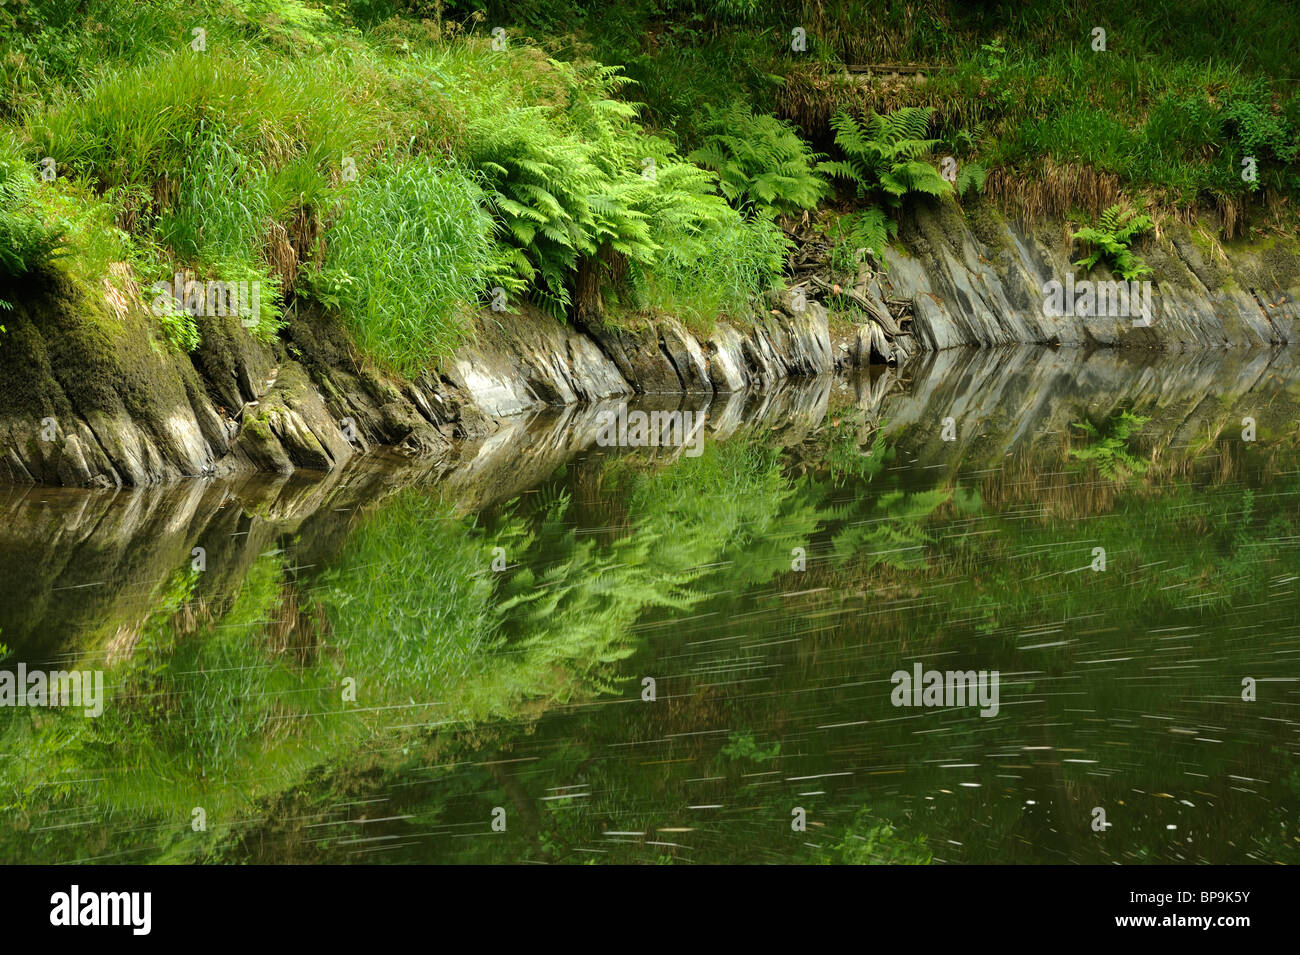 Clear reflections in the River Teifi near Cenarth, Carmarthenshire, Wales. Stock Photo